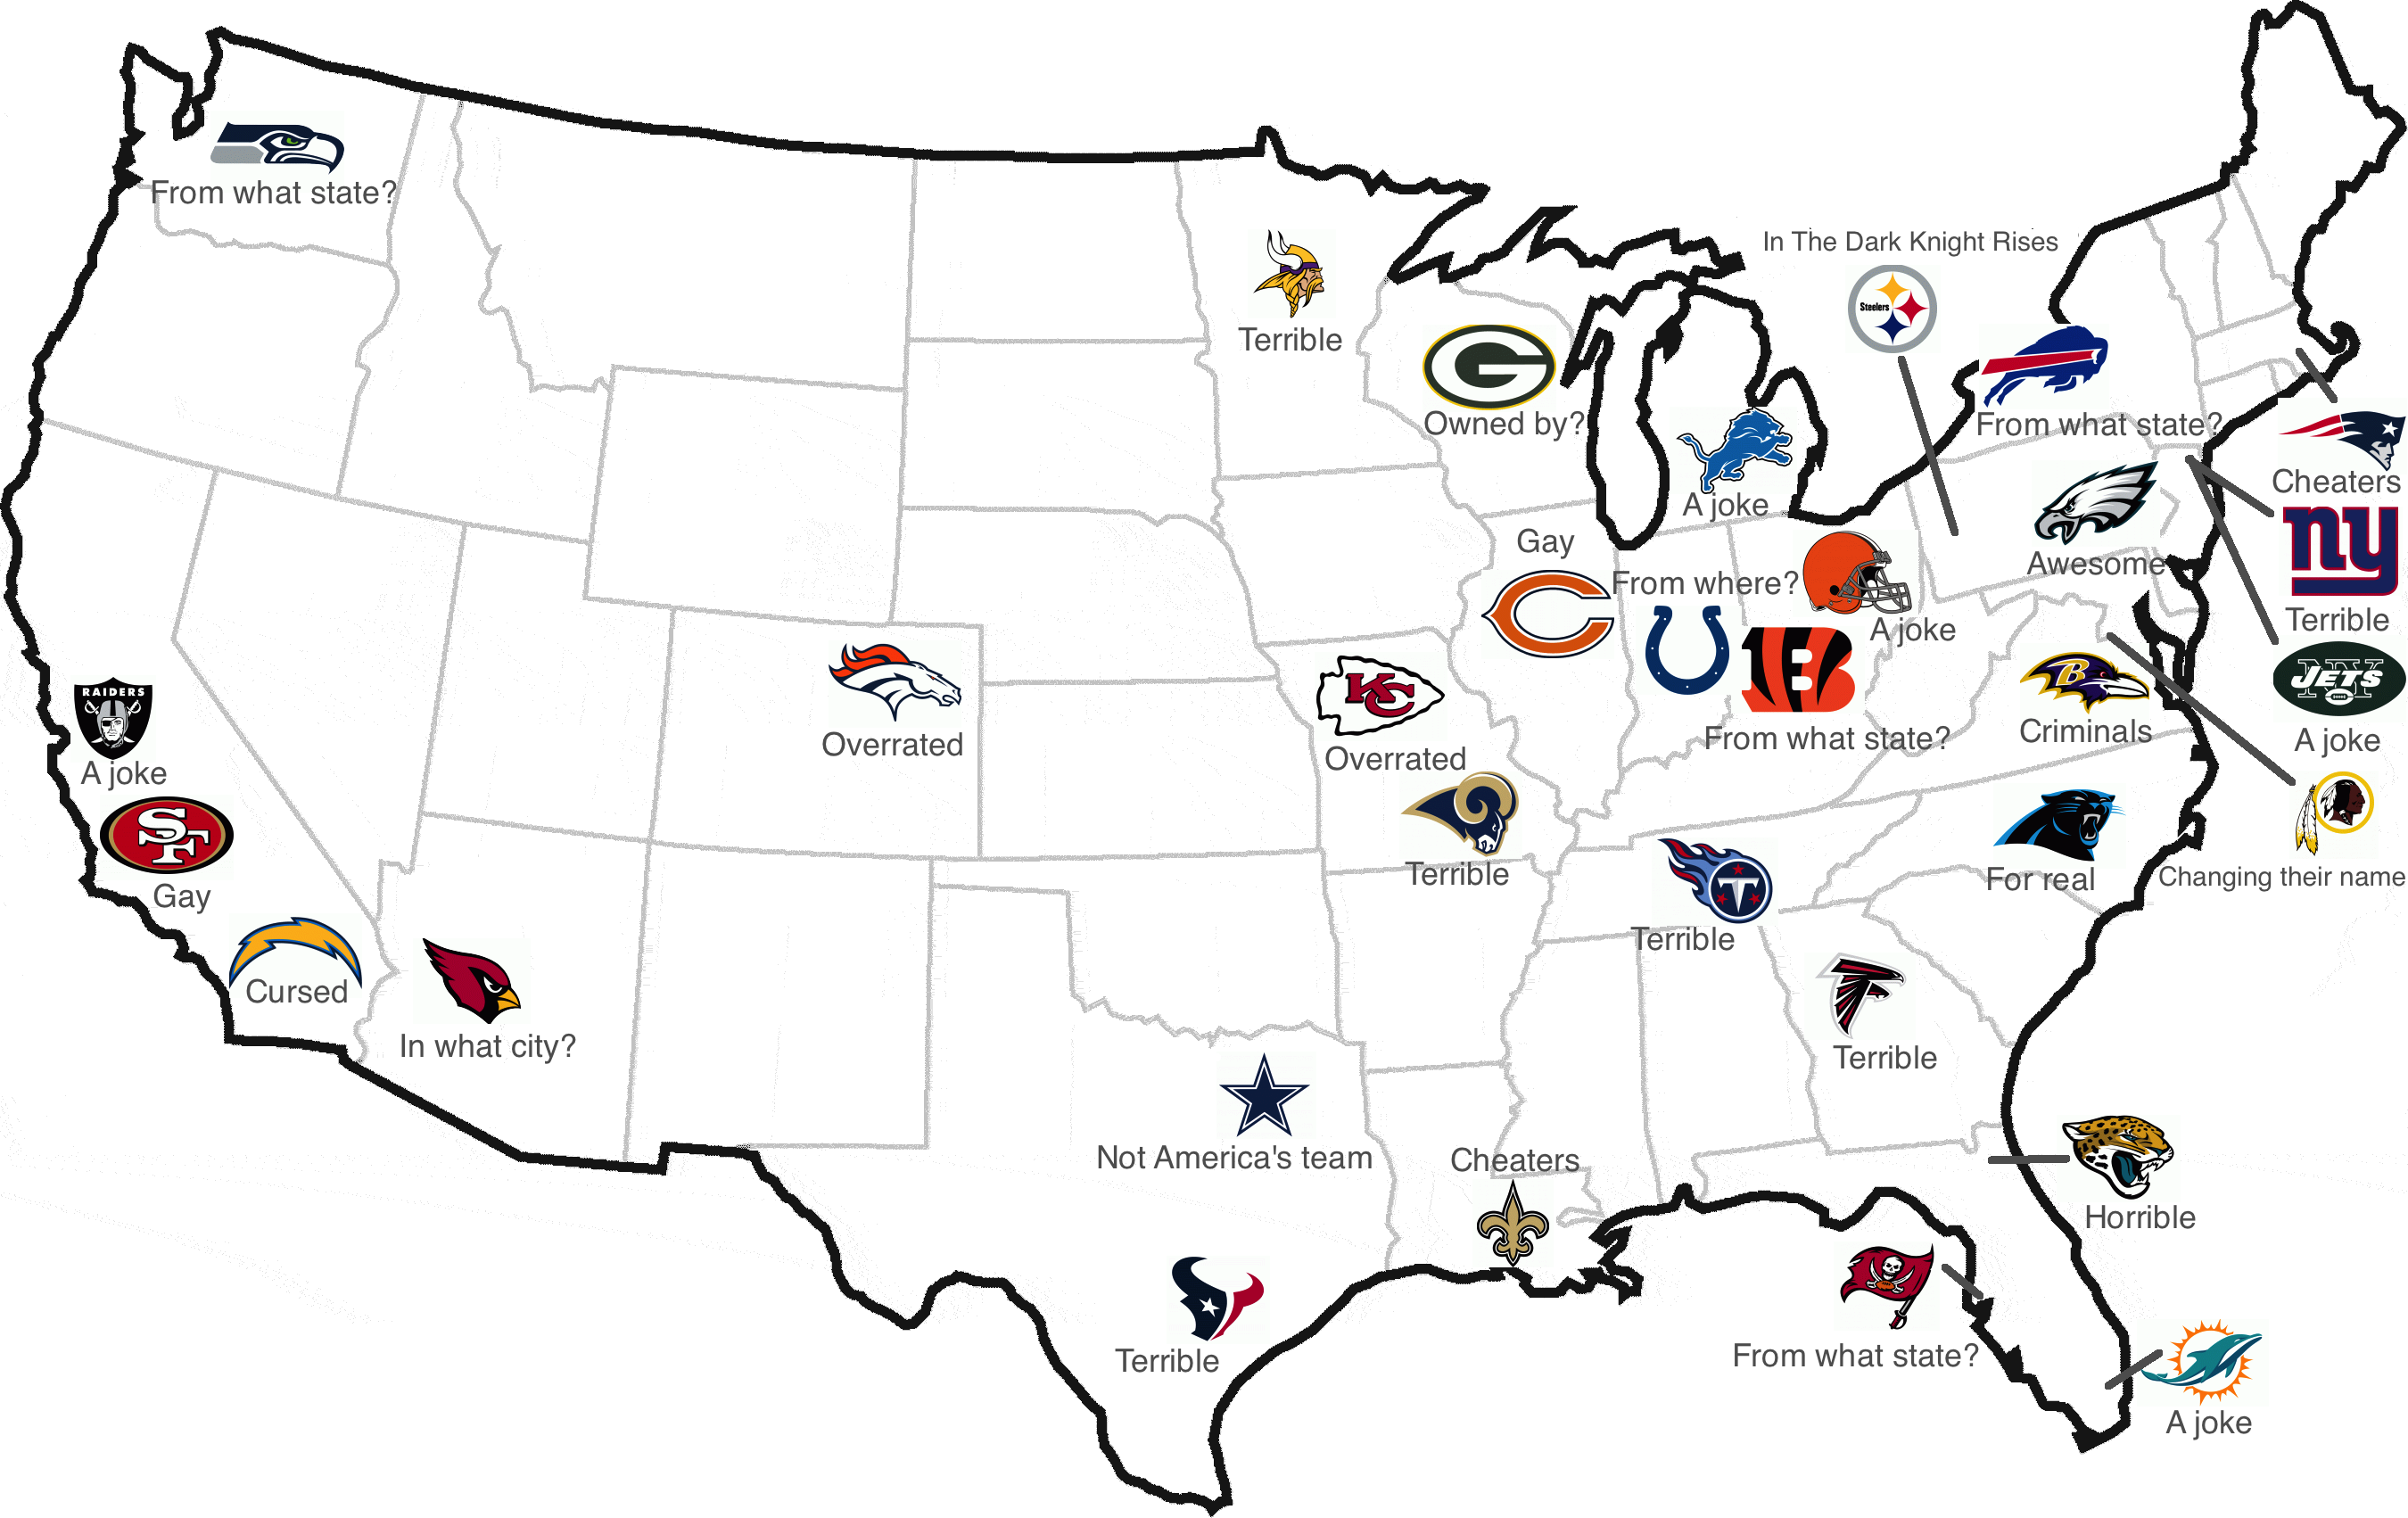 Nfl team map sports pinterest football stadiums and nfl football nfl map northeast map la plata maps us map nfl teams sciox Choice Image